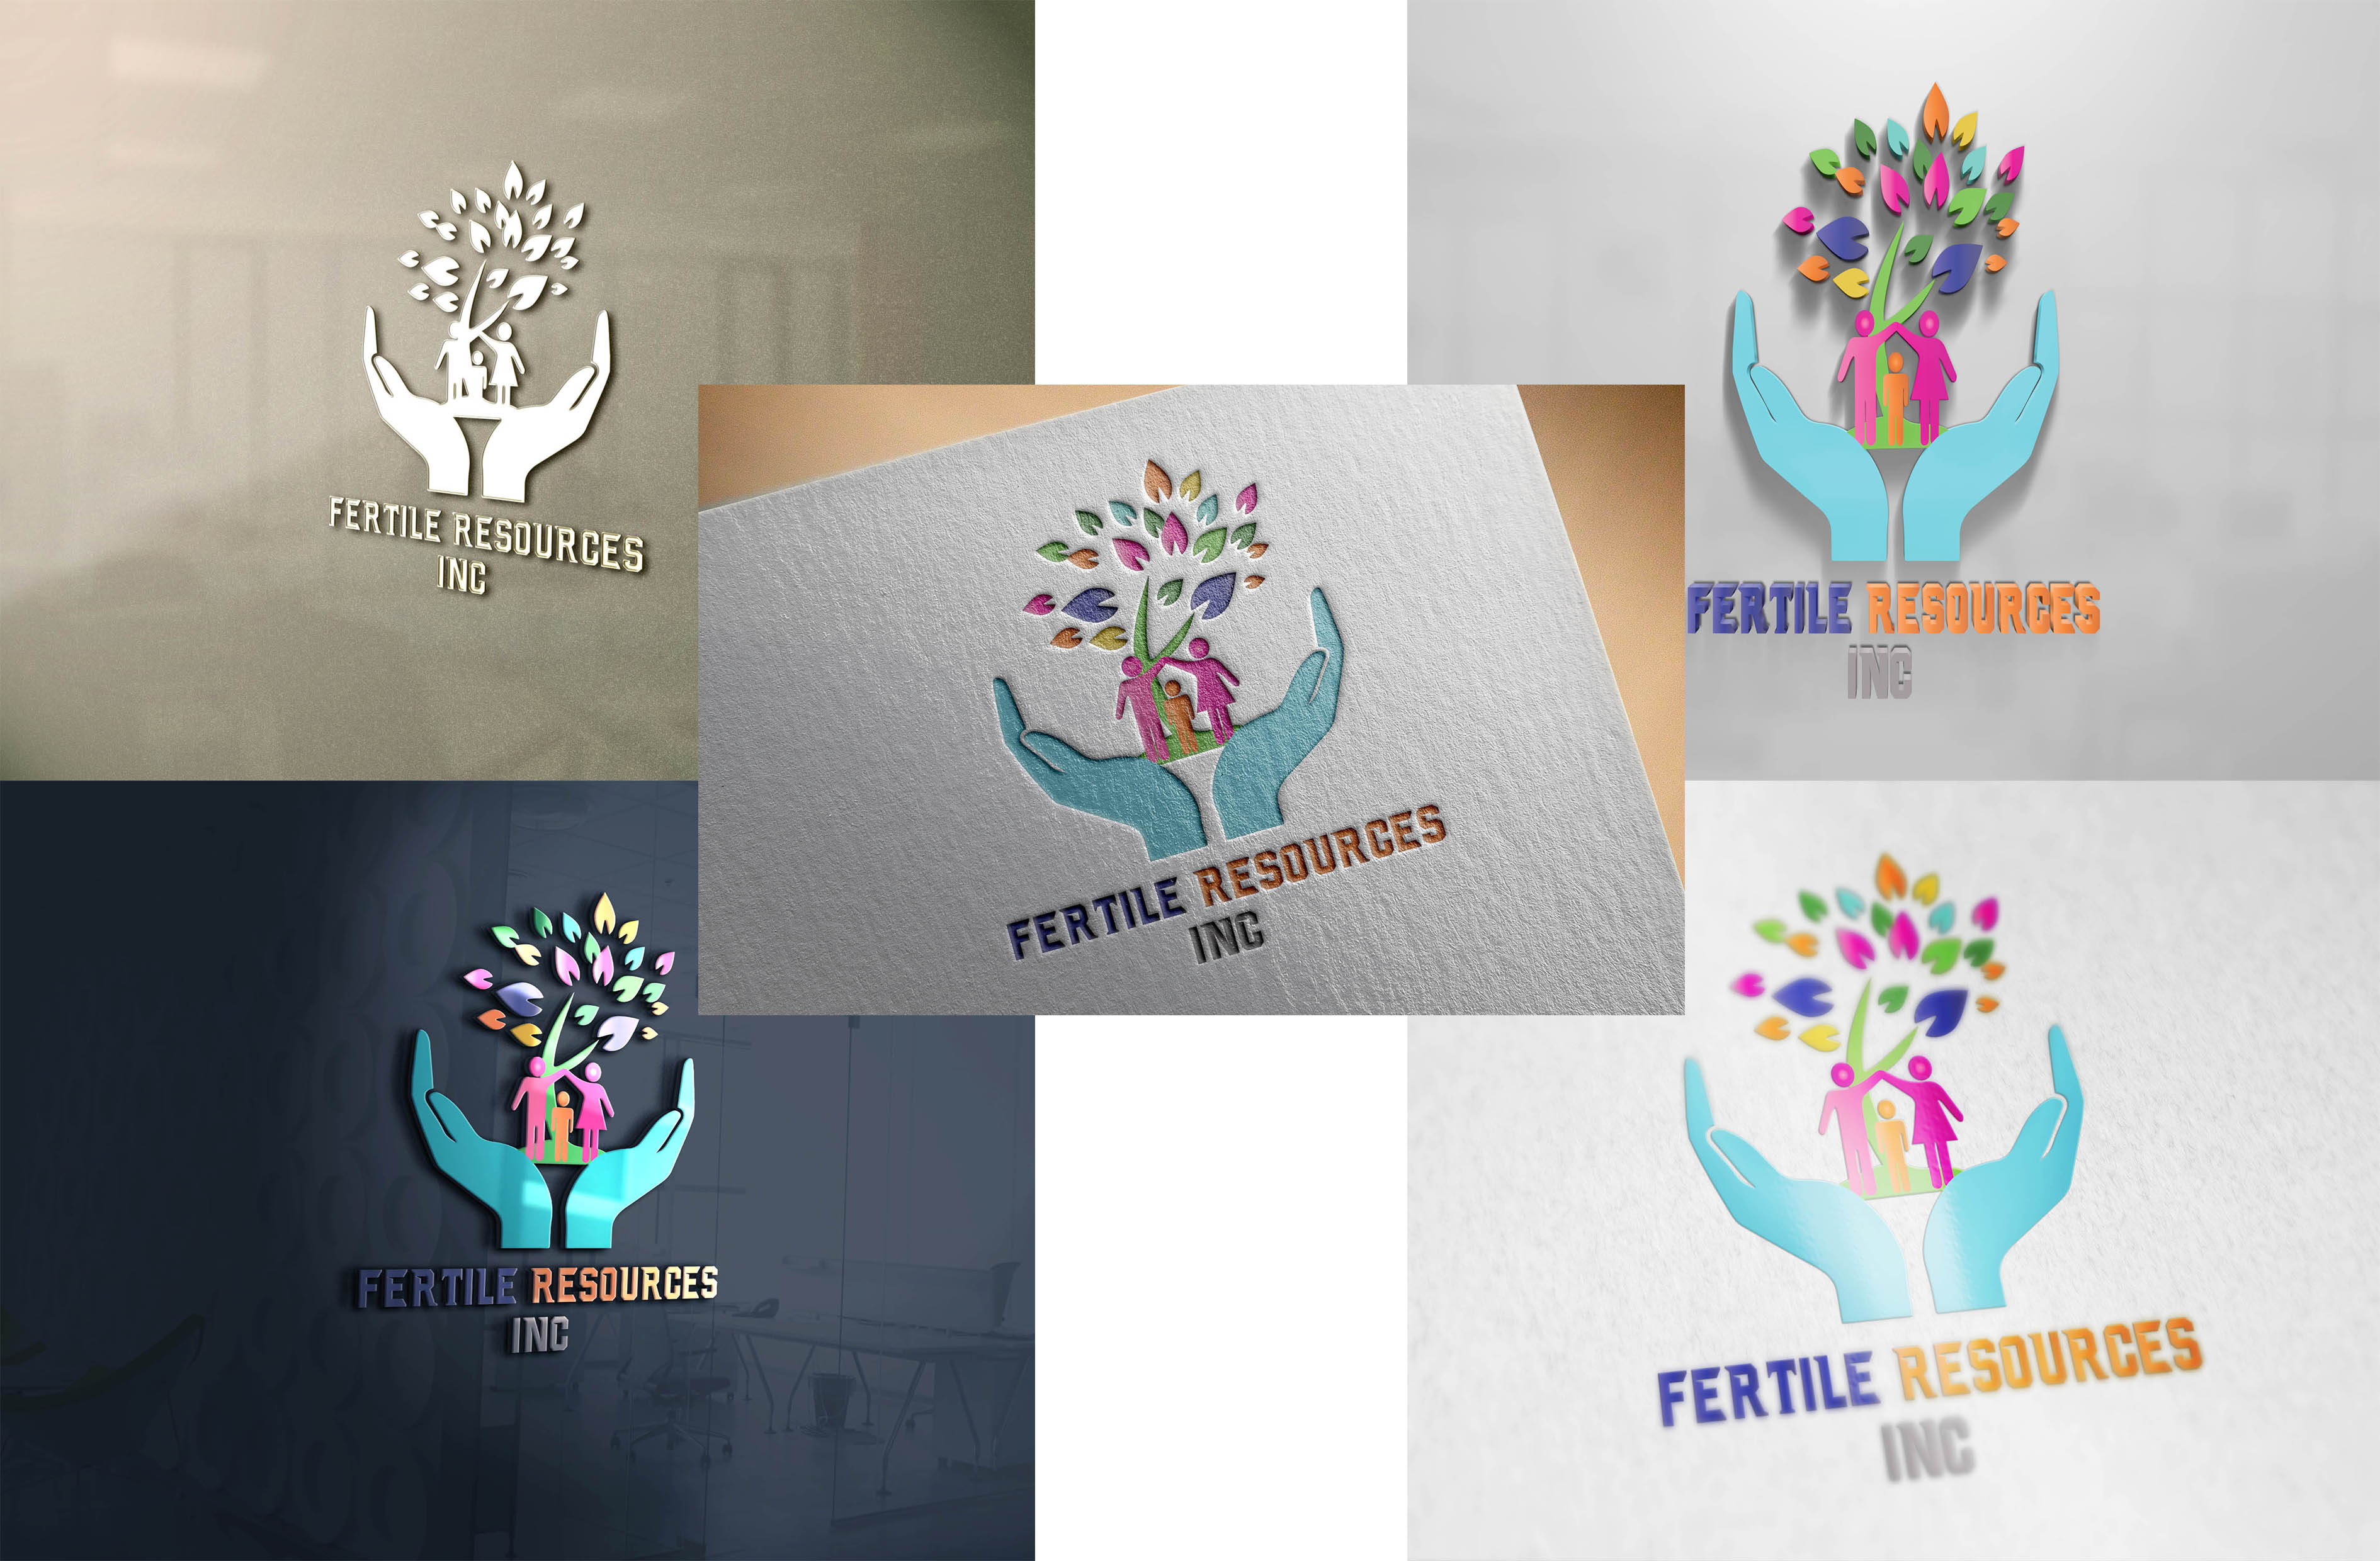 Logo Design by Umair ahmed Iqbal - Entry No. 93 in the Logo Design Contest Fertile Resources, Inc. Logo Design.